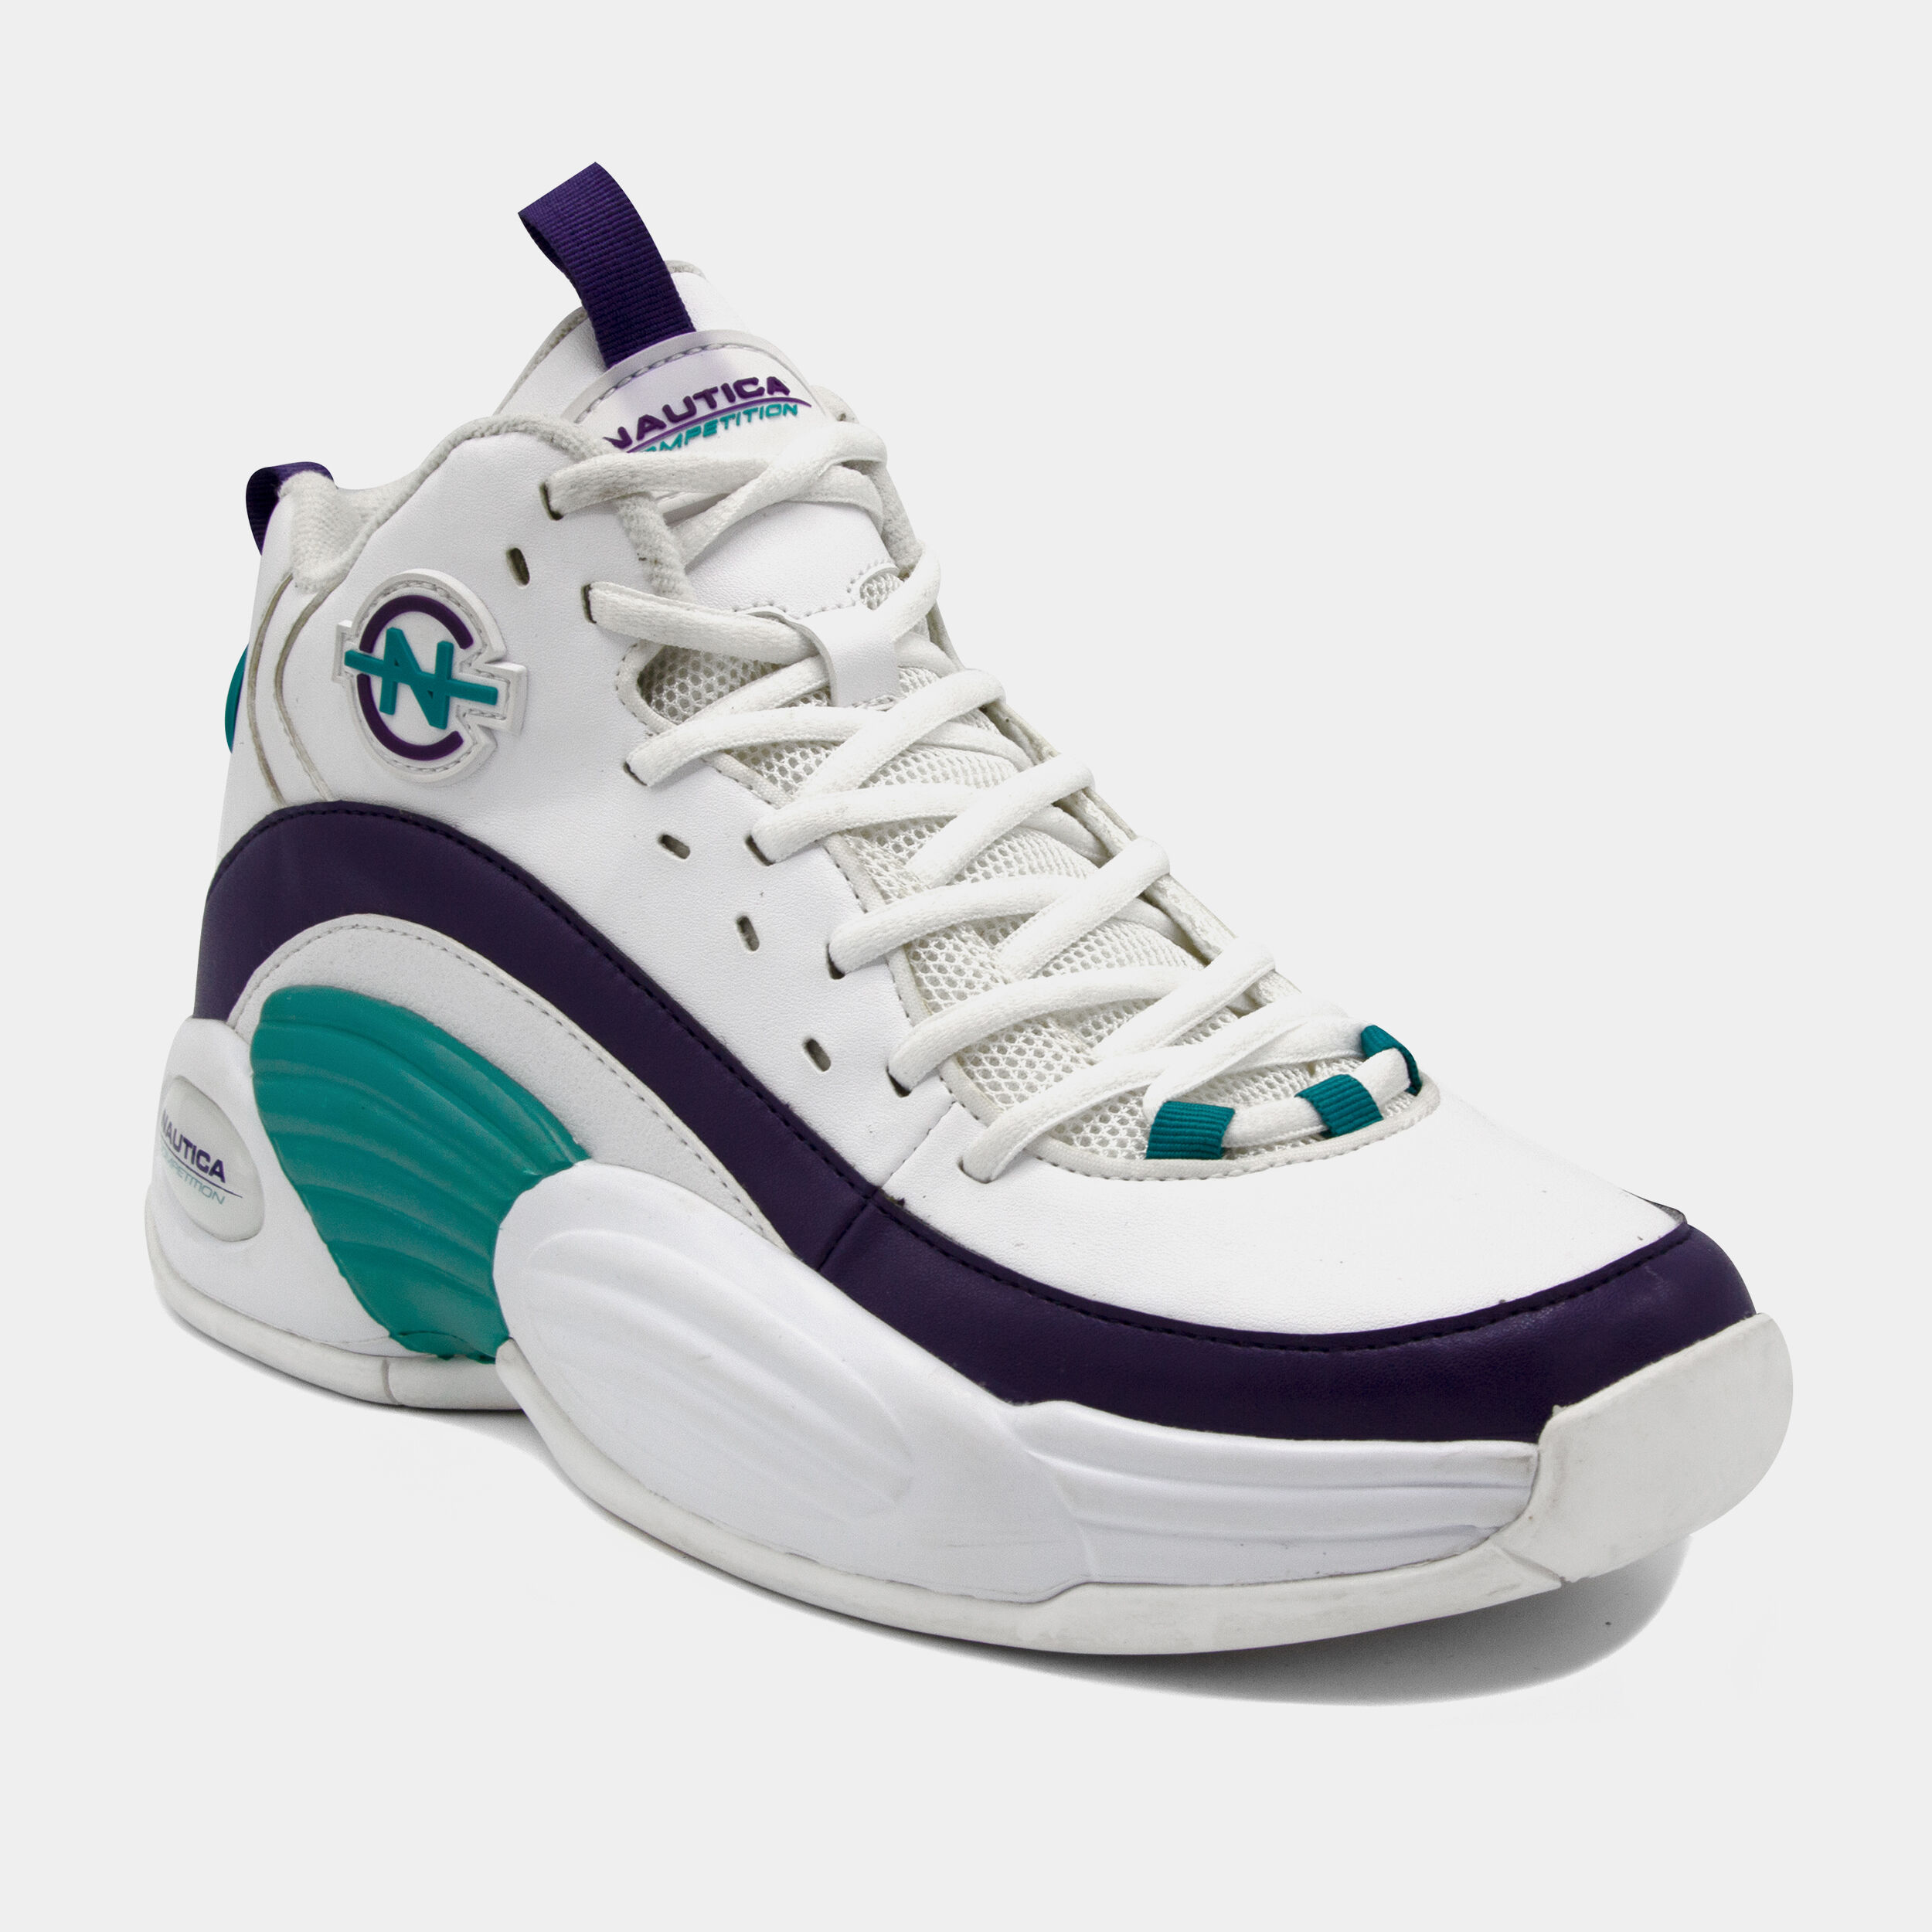 NAUTICA COMPETITION SPARA HIGH TOP IN